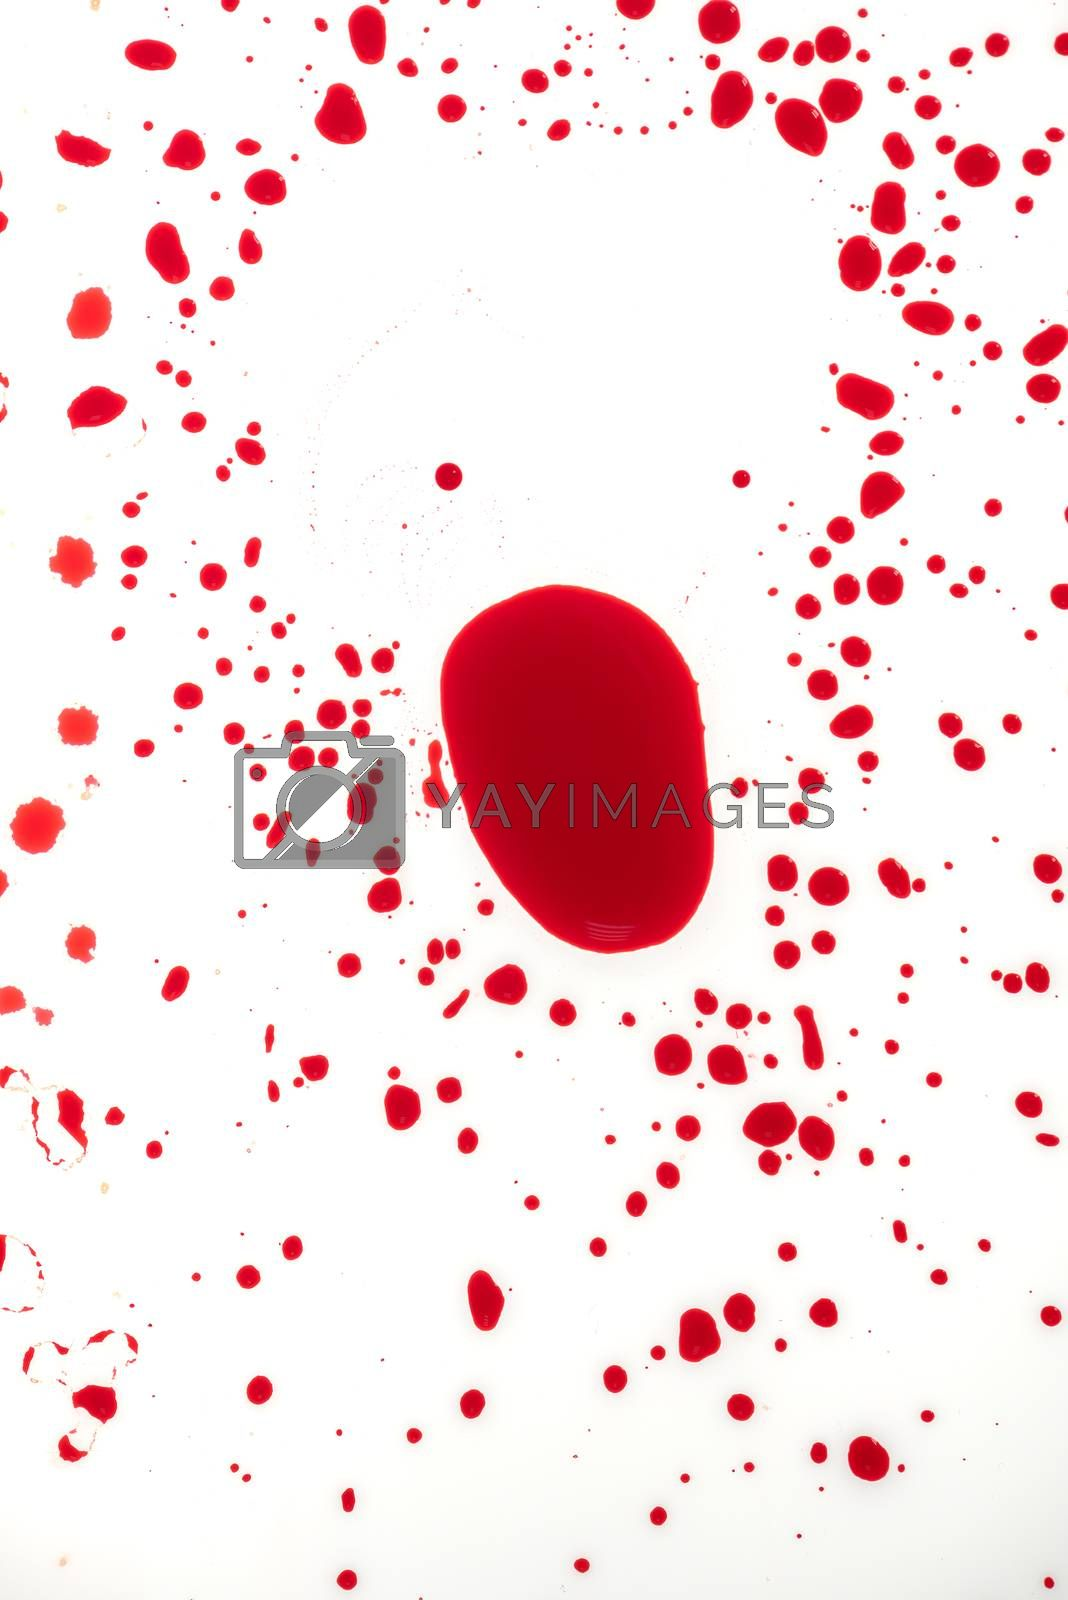 Blood drips on white surface, abstract background for violence, murder or crime scene